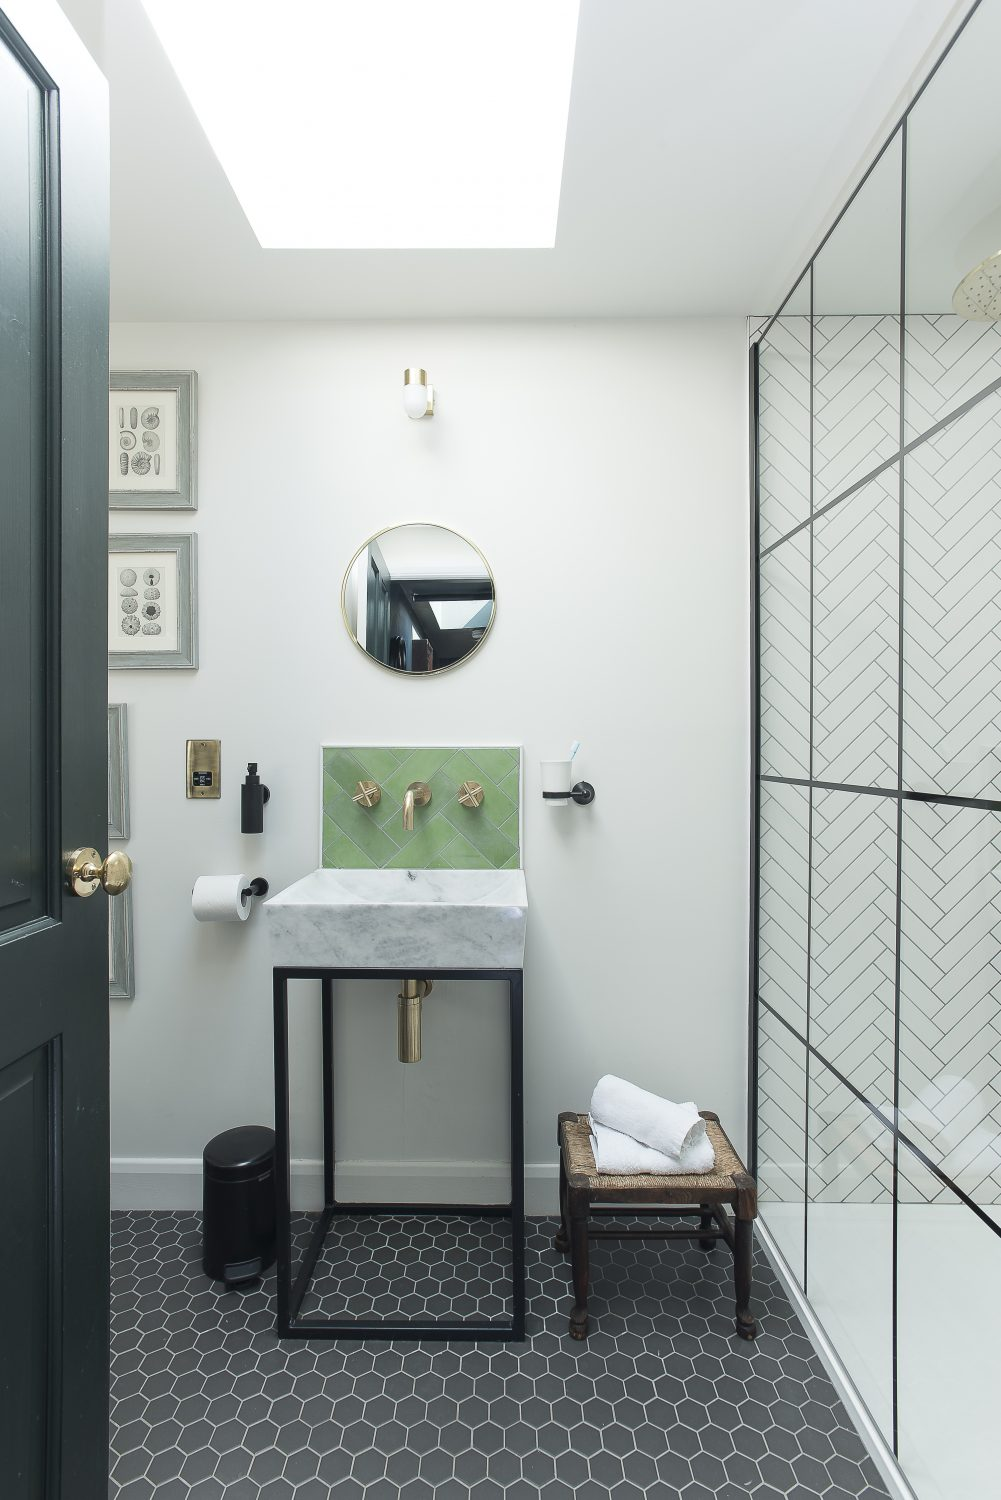 The bathroom is small but perfectly formed, with a shower screen that echoes the black metal Crittal-feel windows and doors throughout The Outbuilding